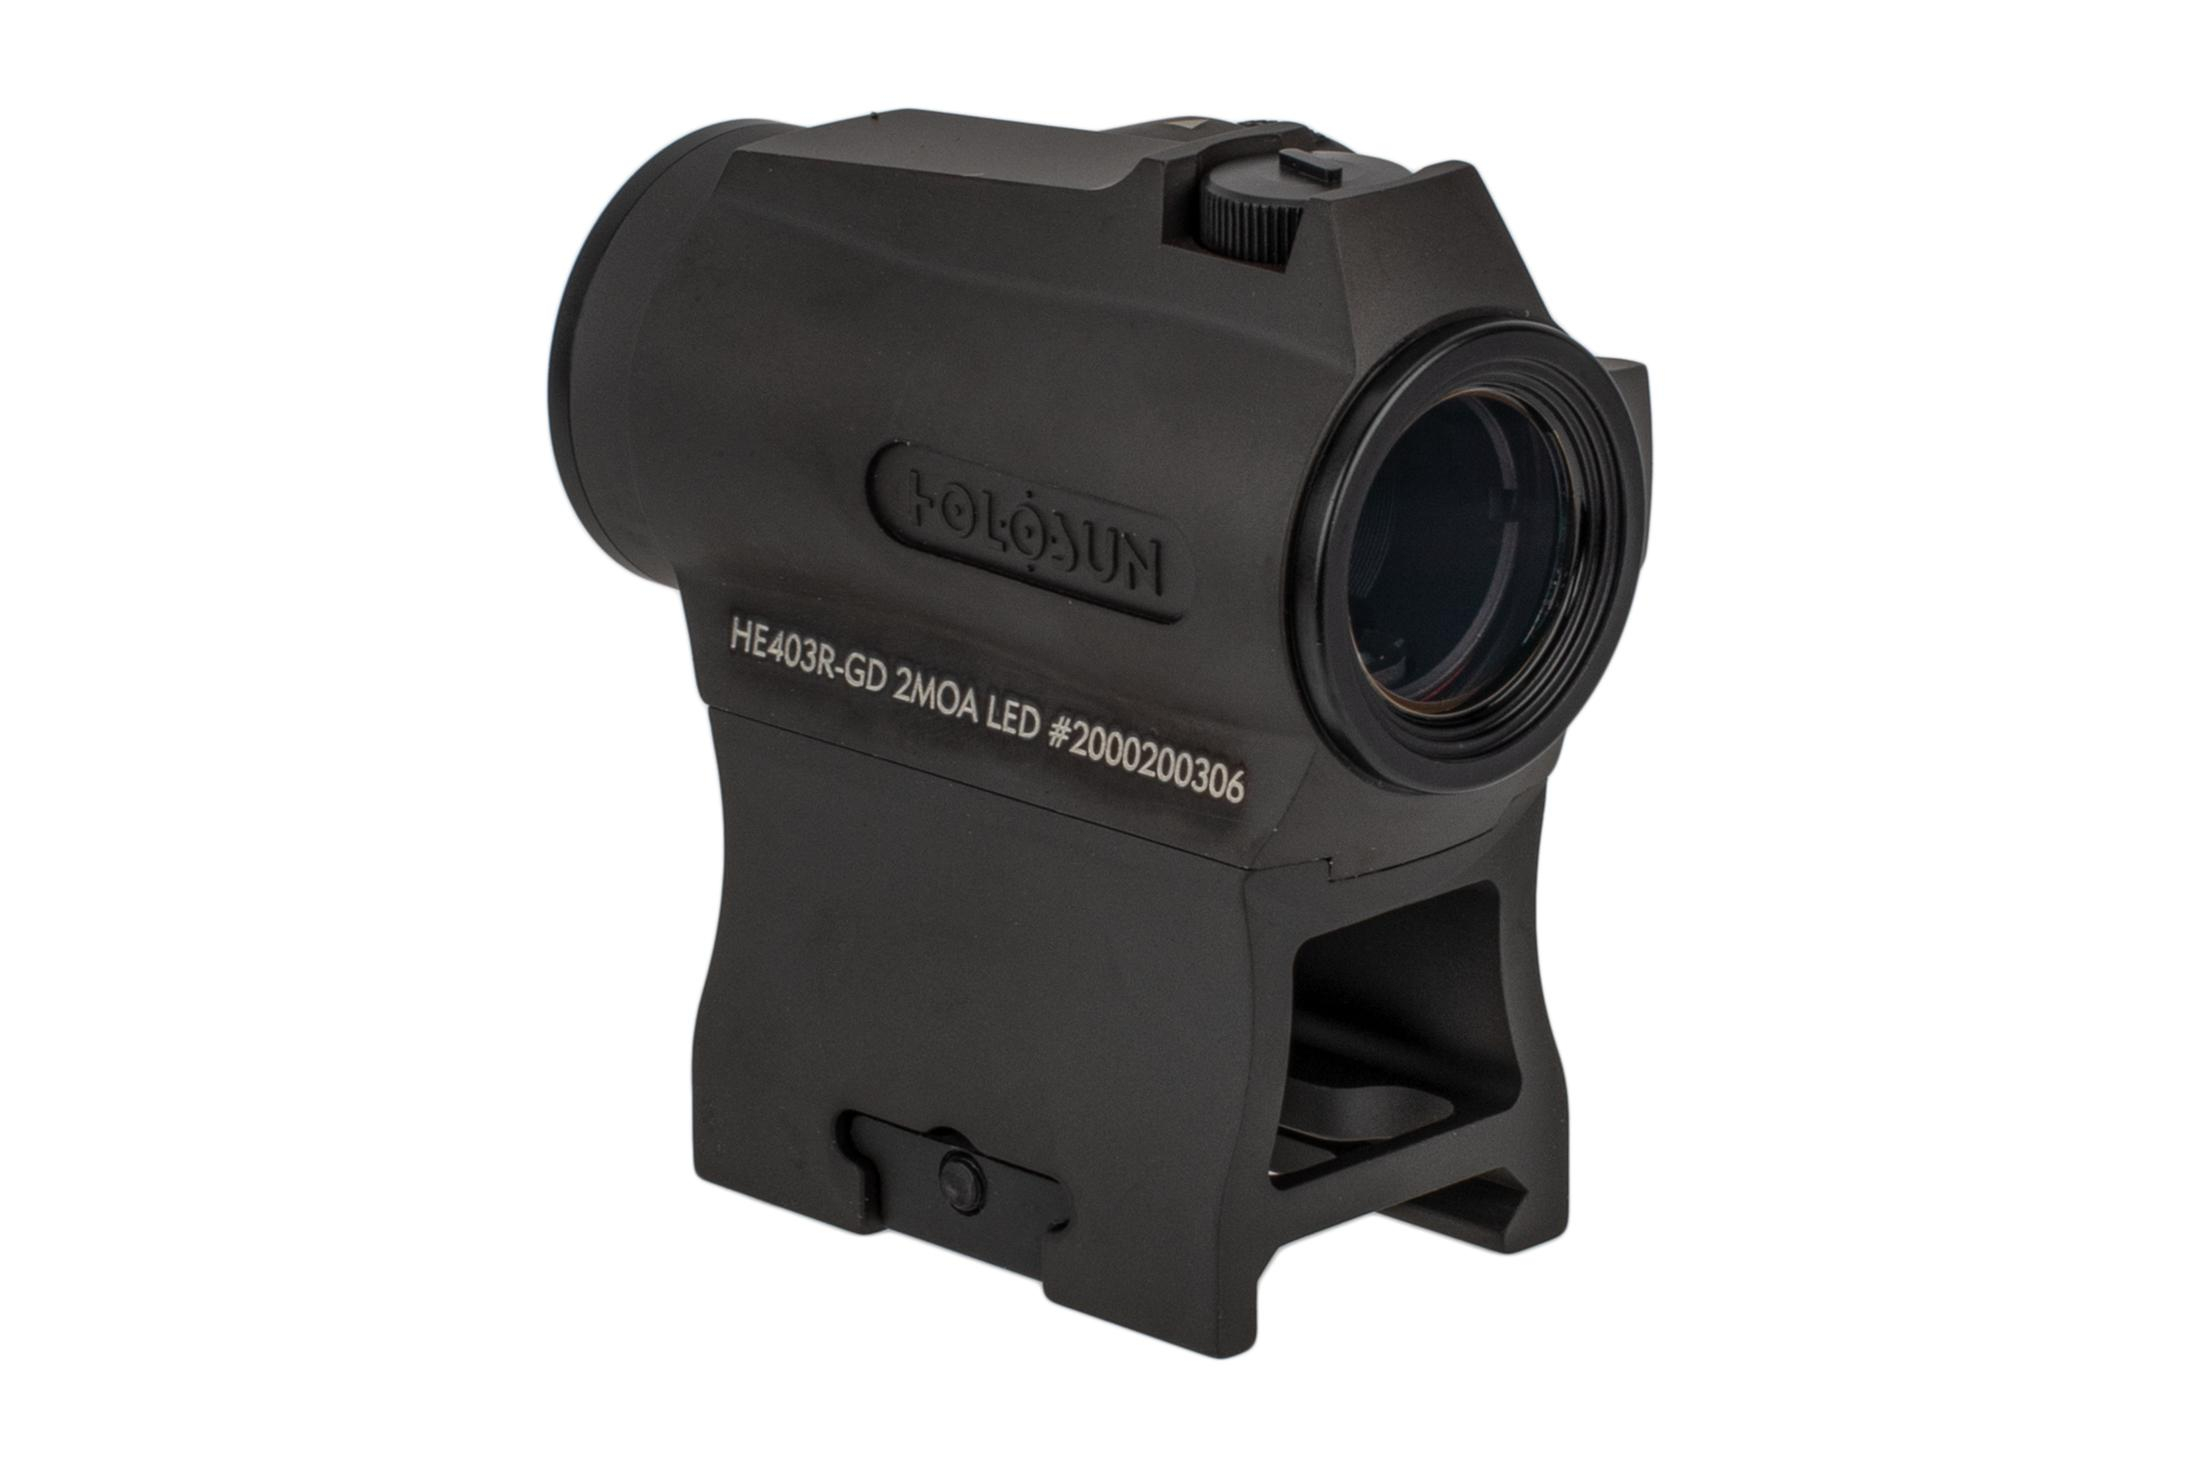 The Holosun micro gold dot optic comes with a picatinny mount